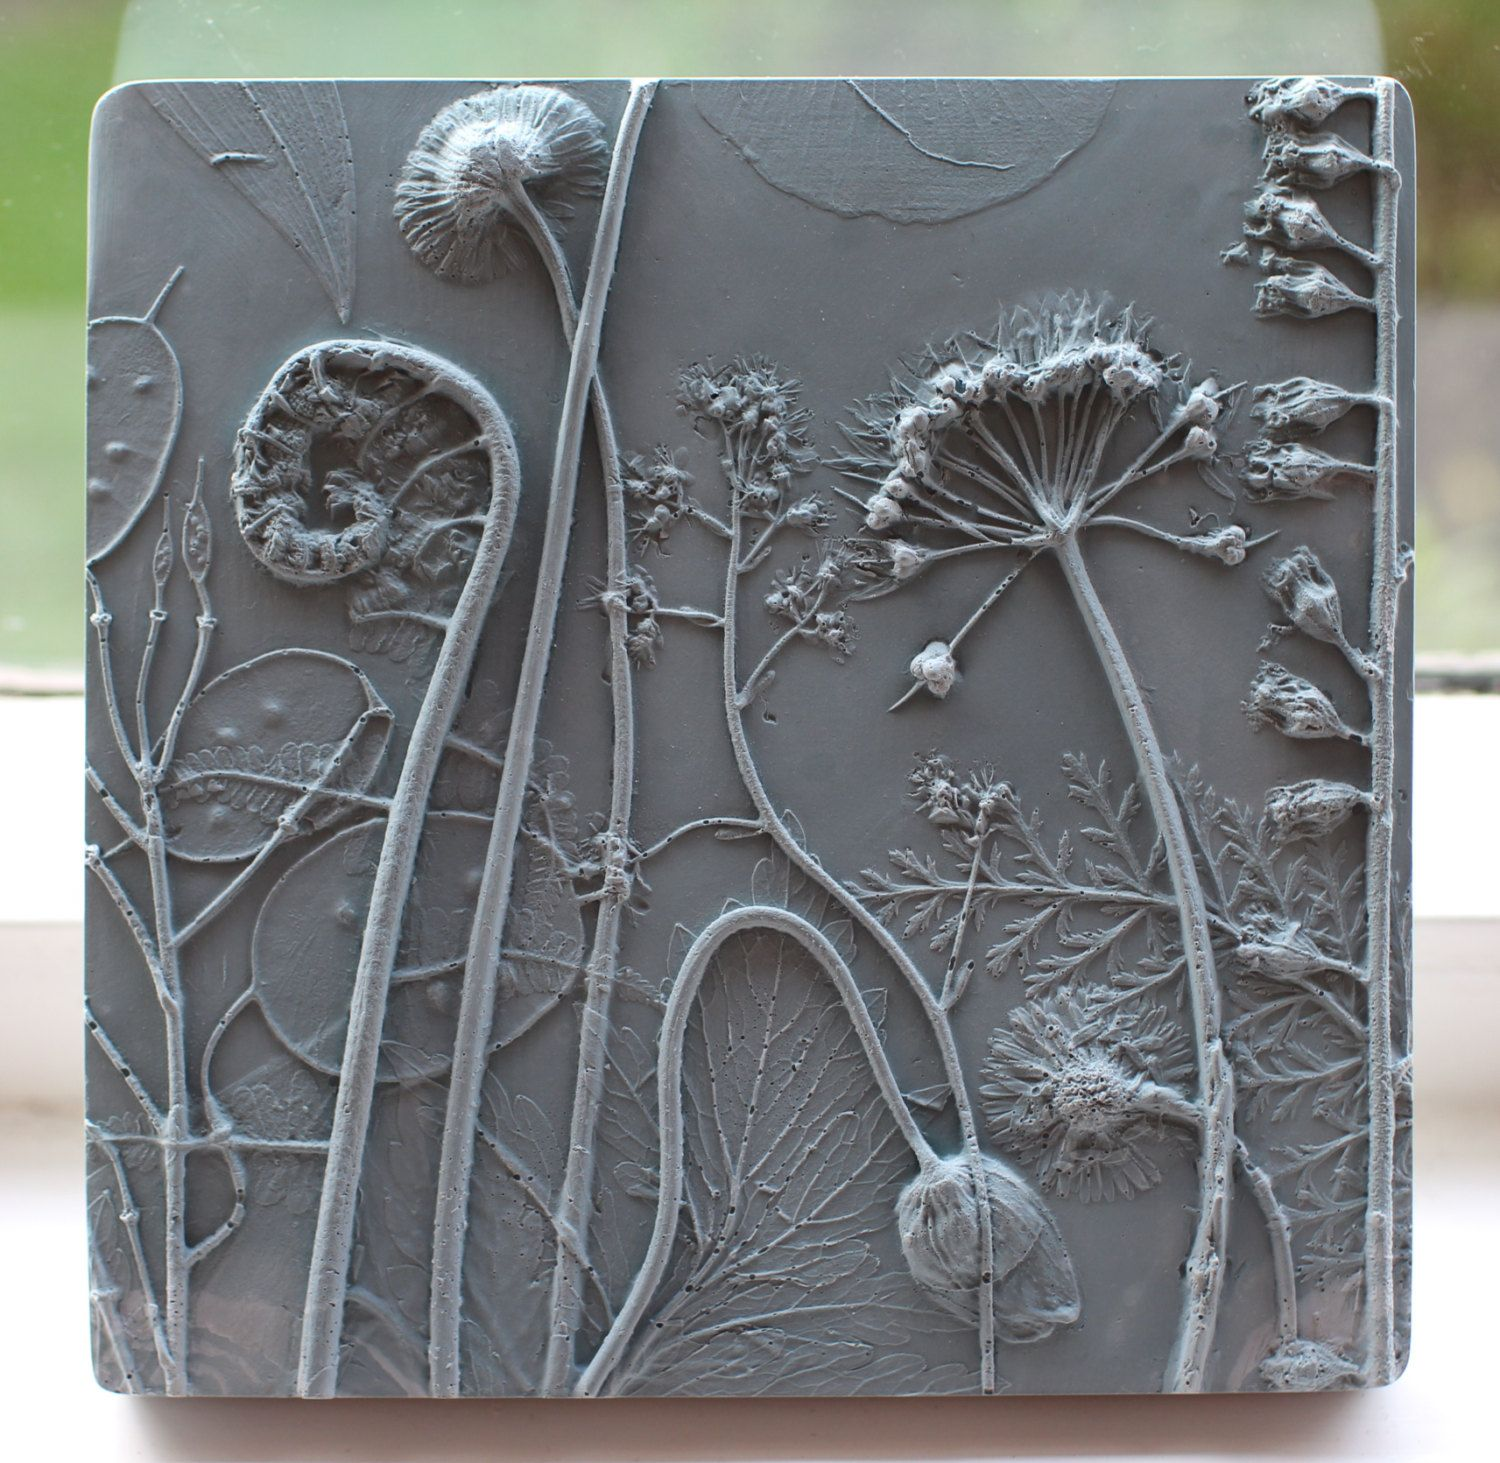 How to make clay plaster - Working As Part Tactile Studio In London Uk Dein S Recent Artistic Venture Involves Plaster